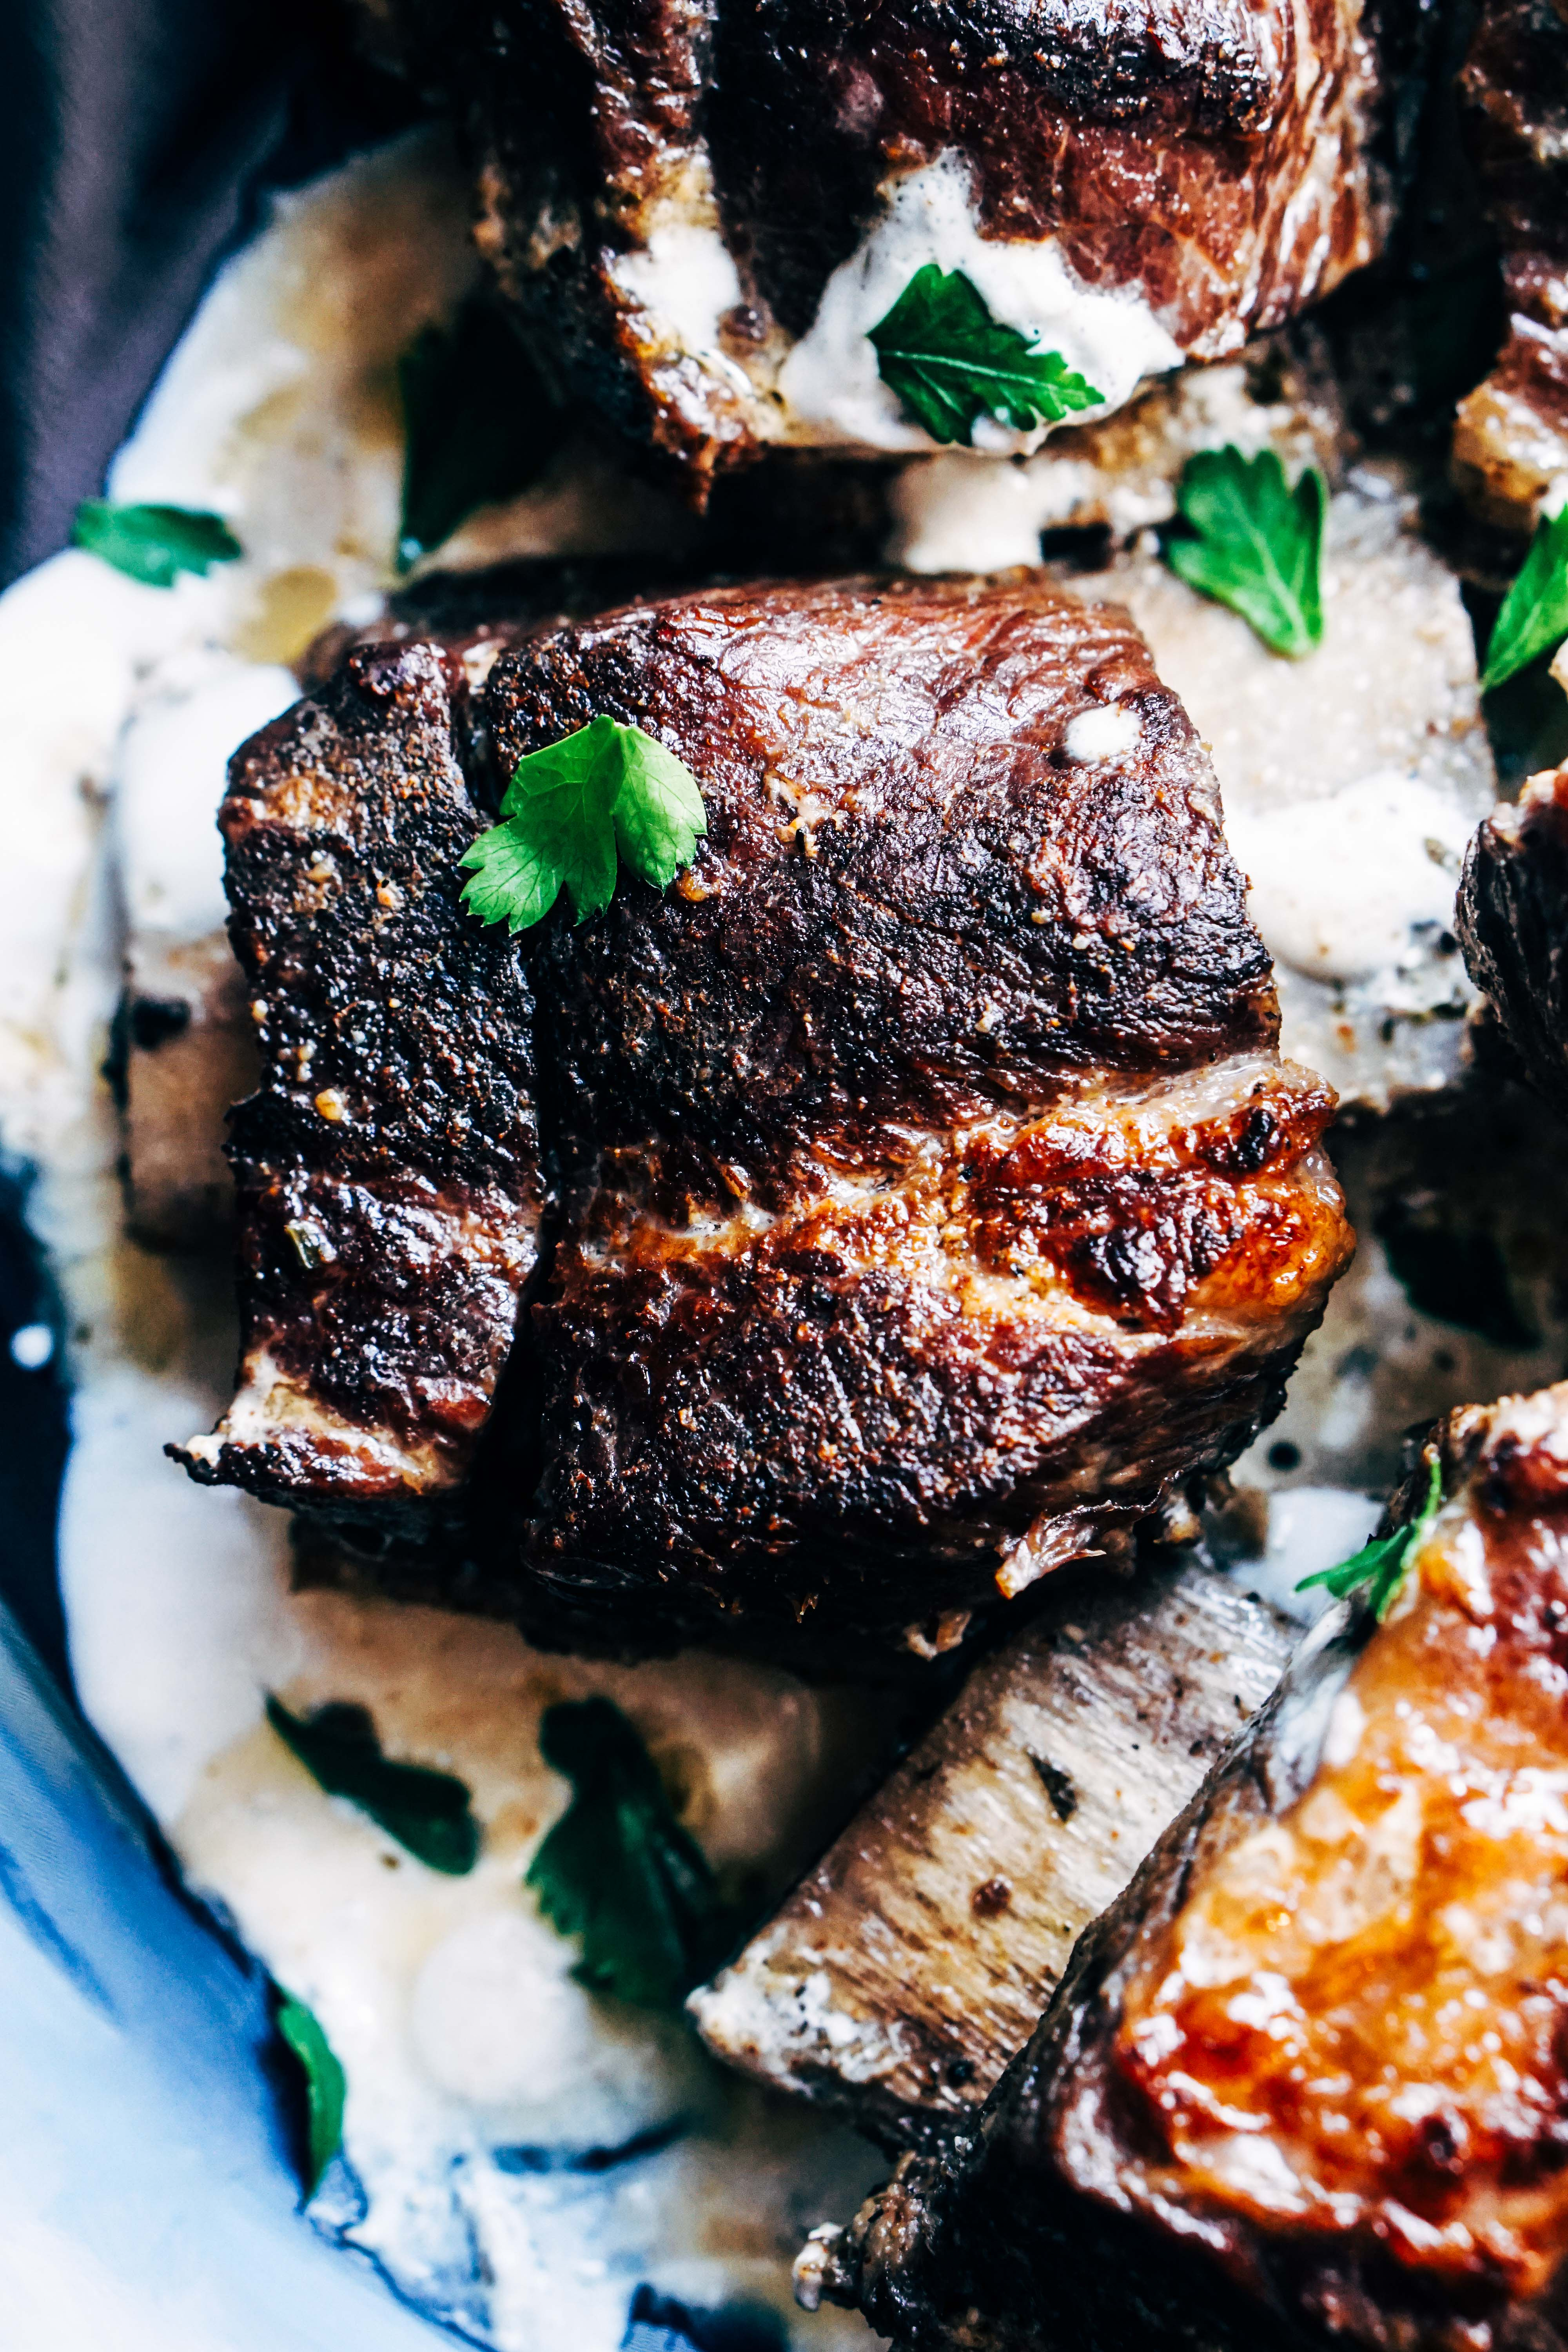 Crockpot Beef Short Ribs Recipe with Creamy Mushroom Sauce - Low Carb, Keto, Gluten Free